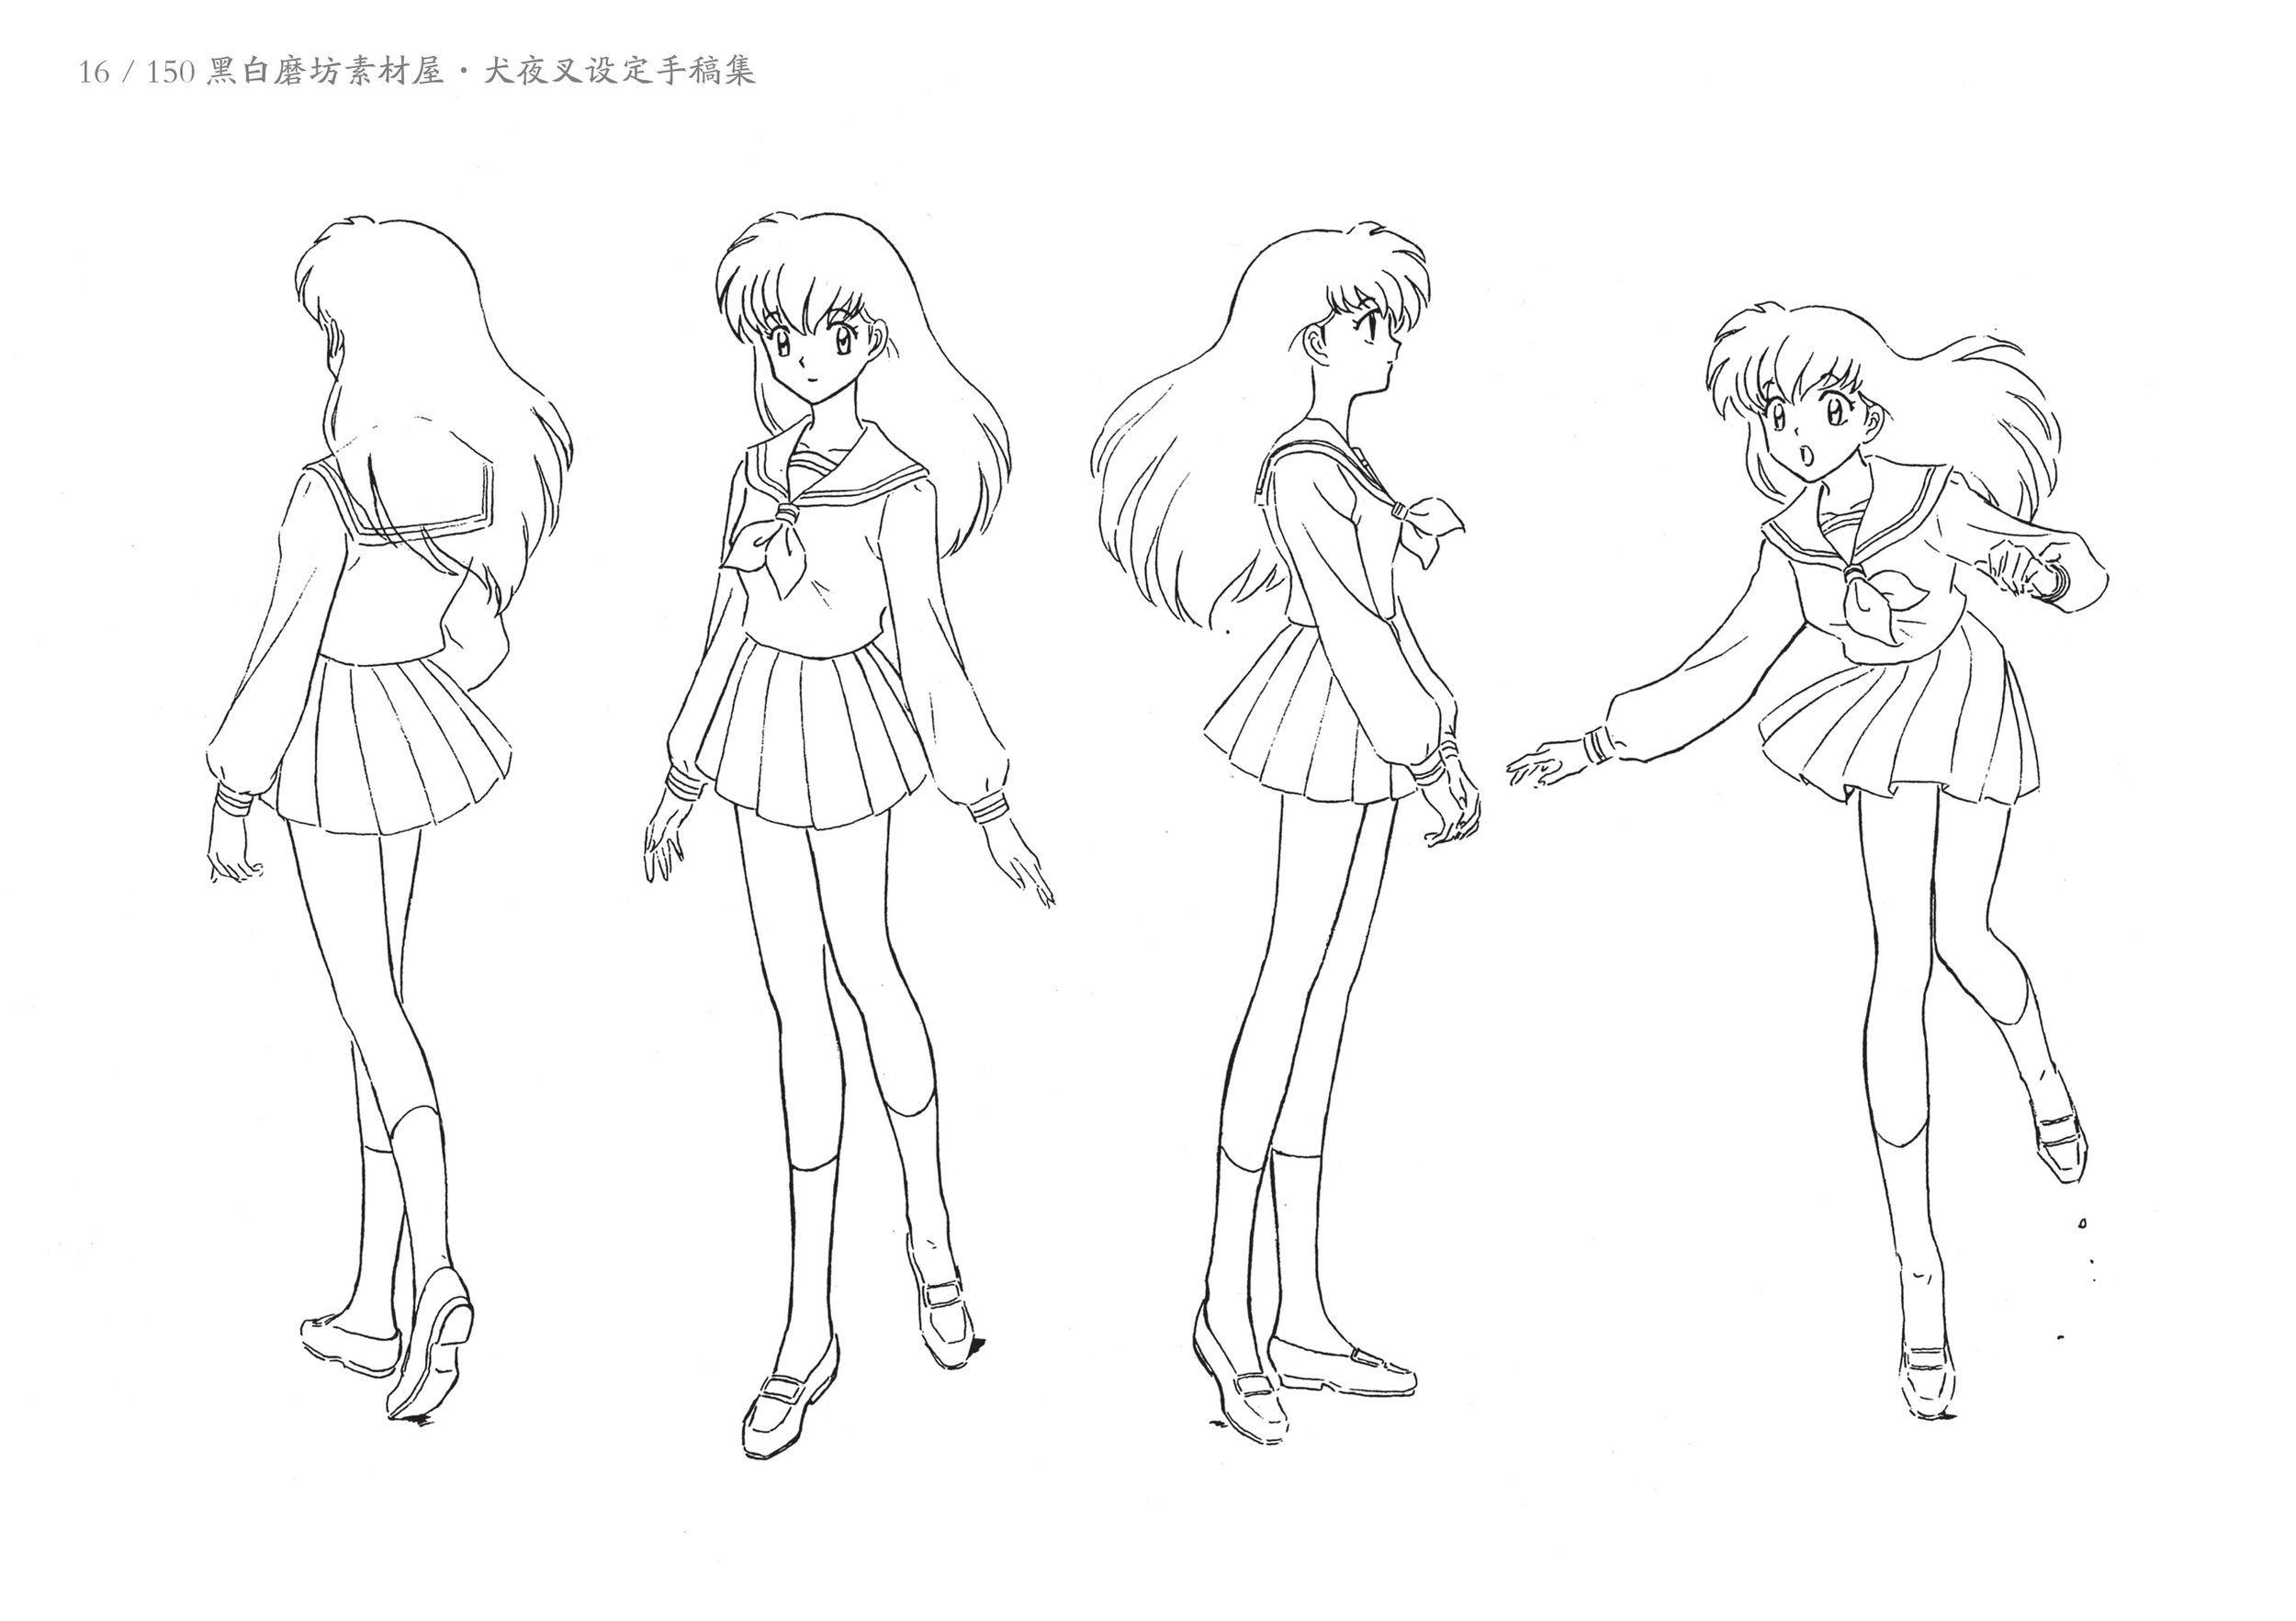 Art of the Inuyasha A - 13.jpg